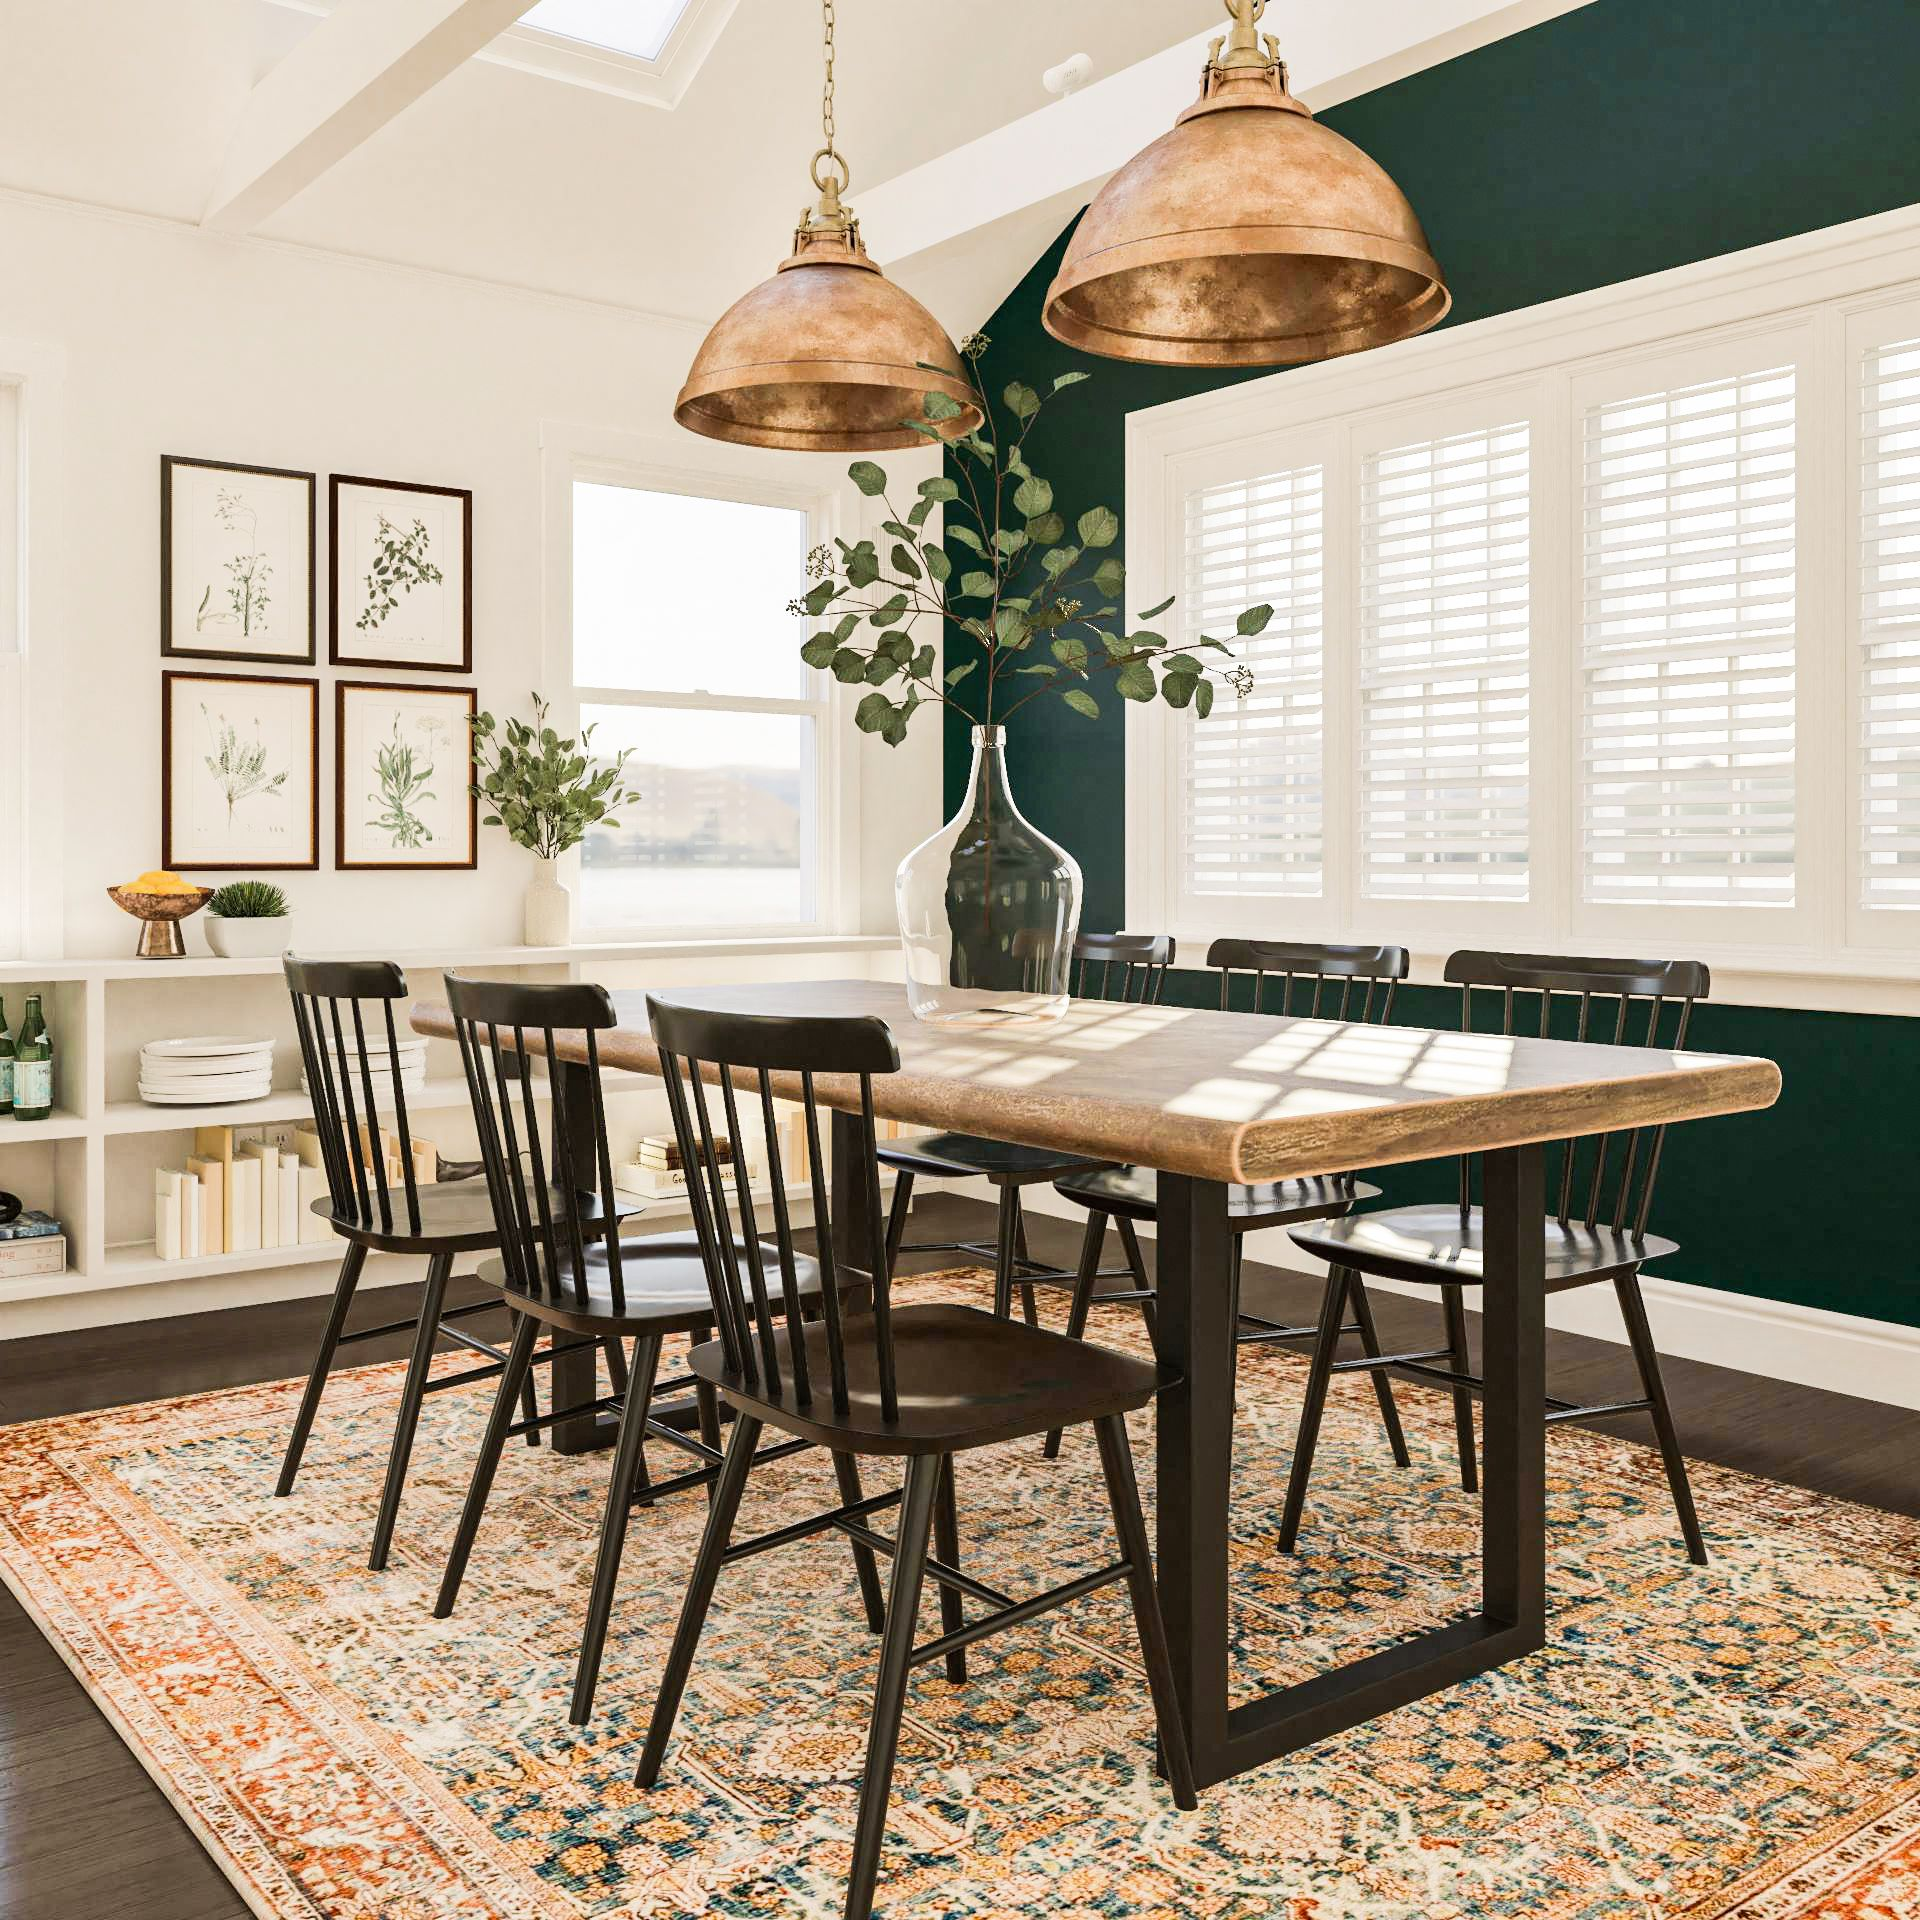 11 Modern Dining Room Tables Our Designers Love Modsy Blog Casual Dining Rooms Dinning Room Design Boho Dining Room